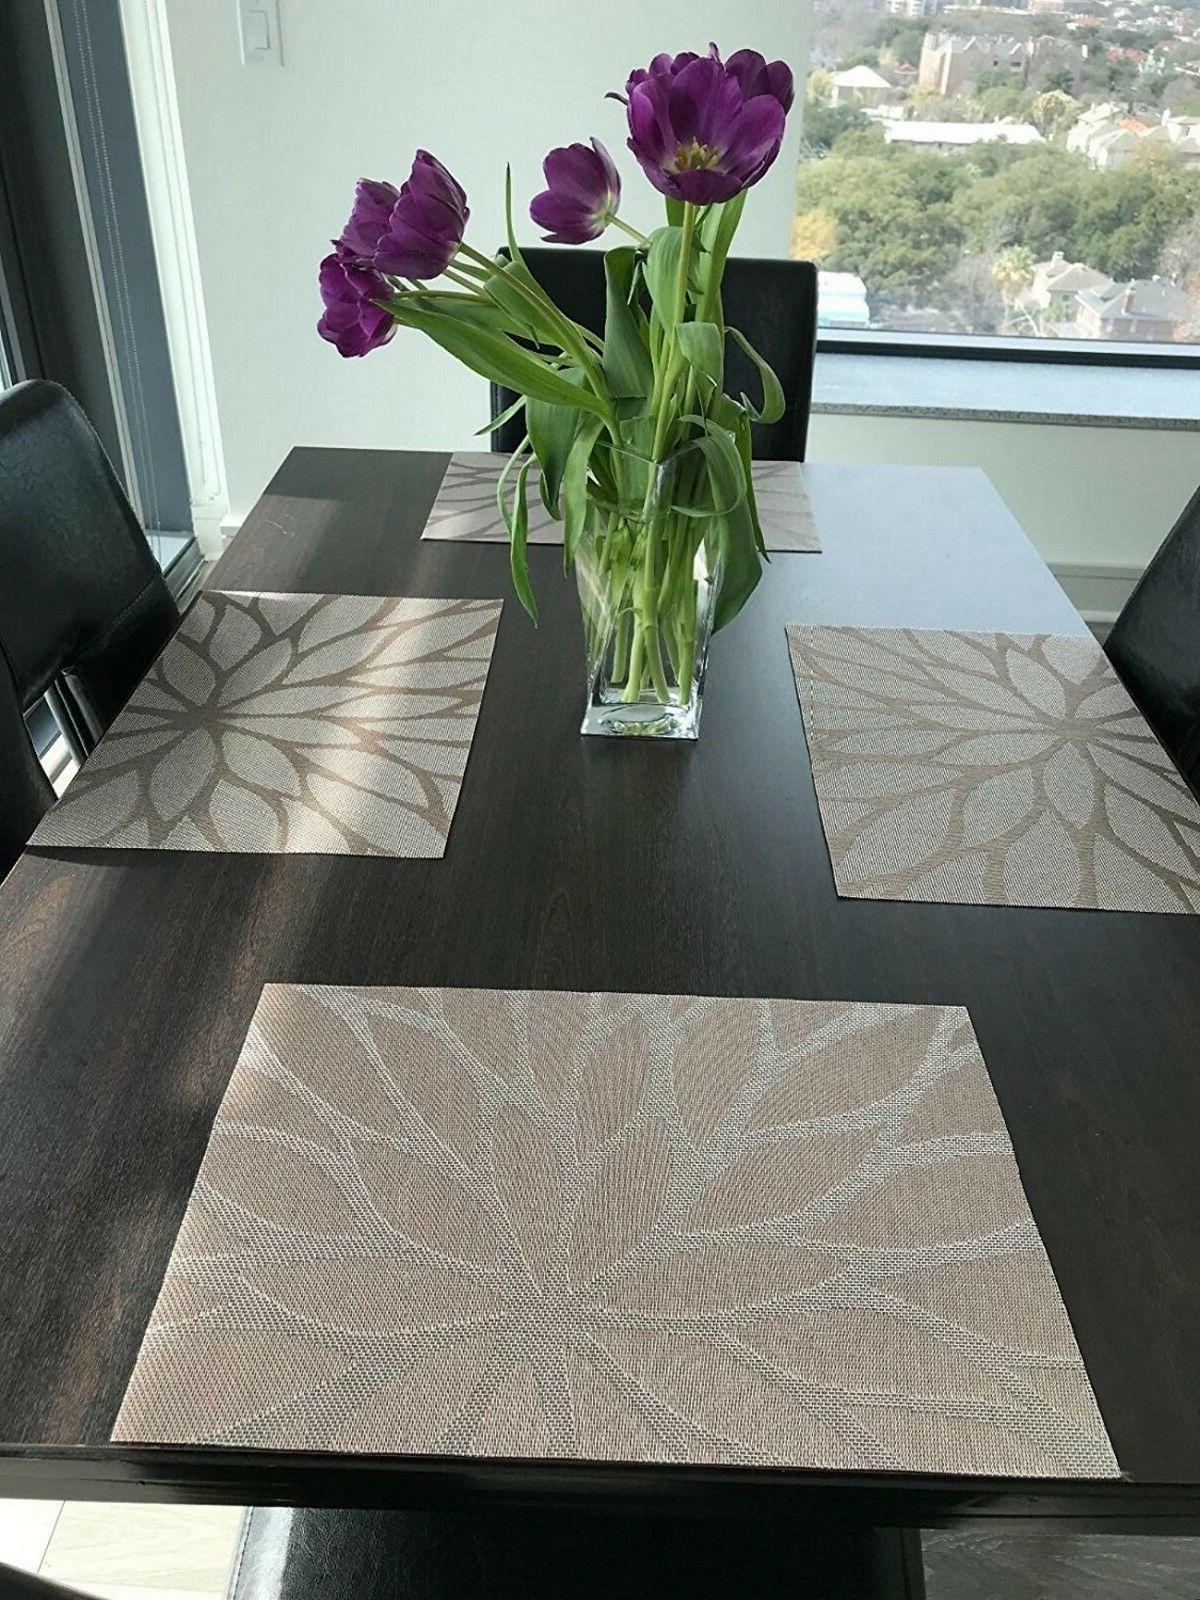 Set of 6 Dining Placemats Woven